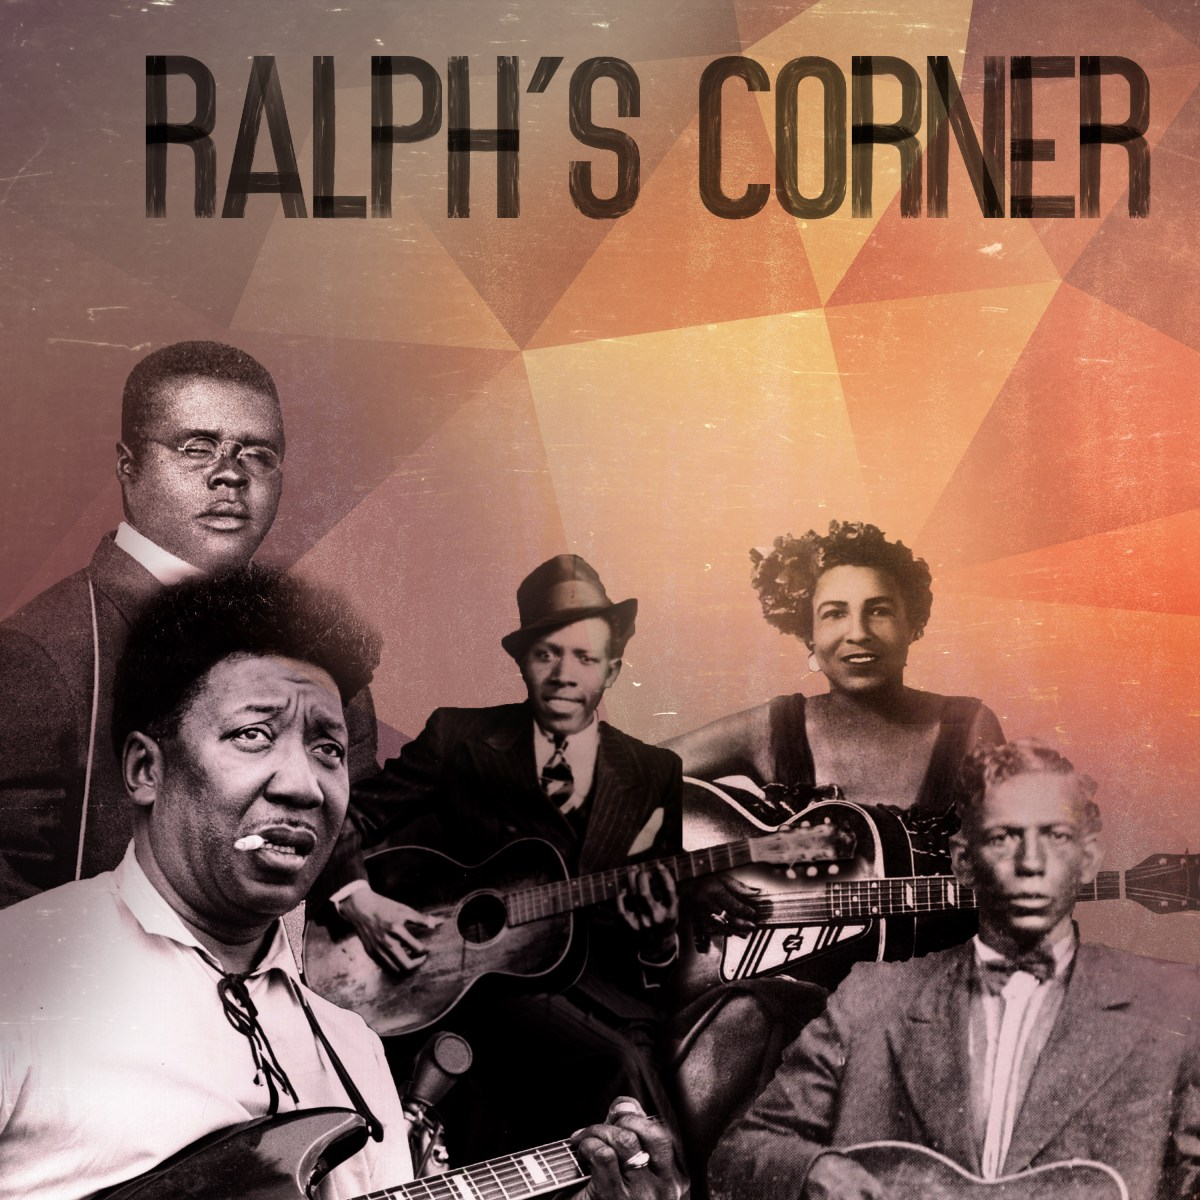 Listen to the First Episode of Ralph's Corner